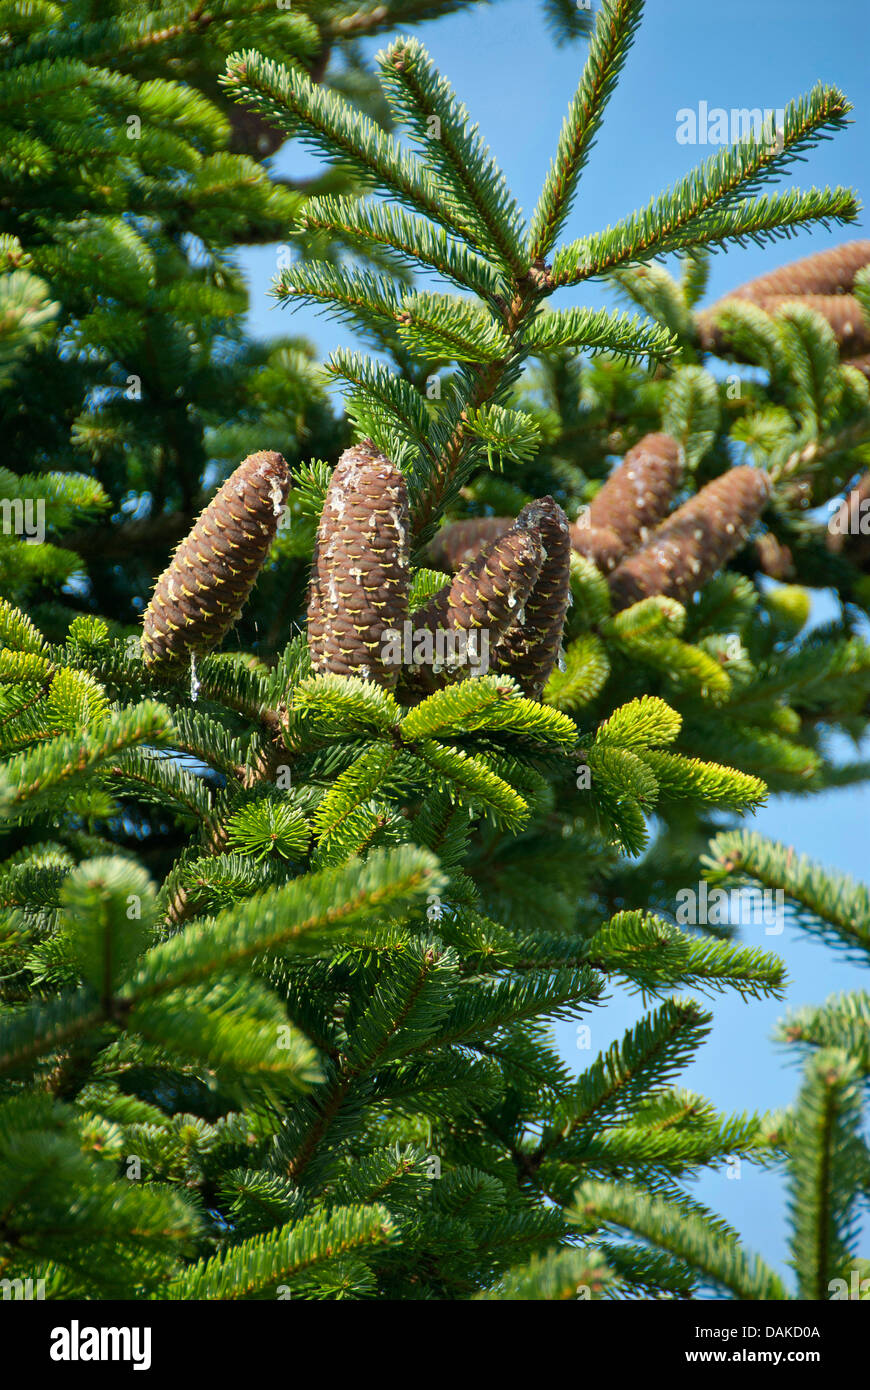 Nordman fir (Abies nordmanniana), branch with cones, Germany, Saxony - Stock Image